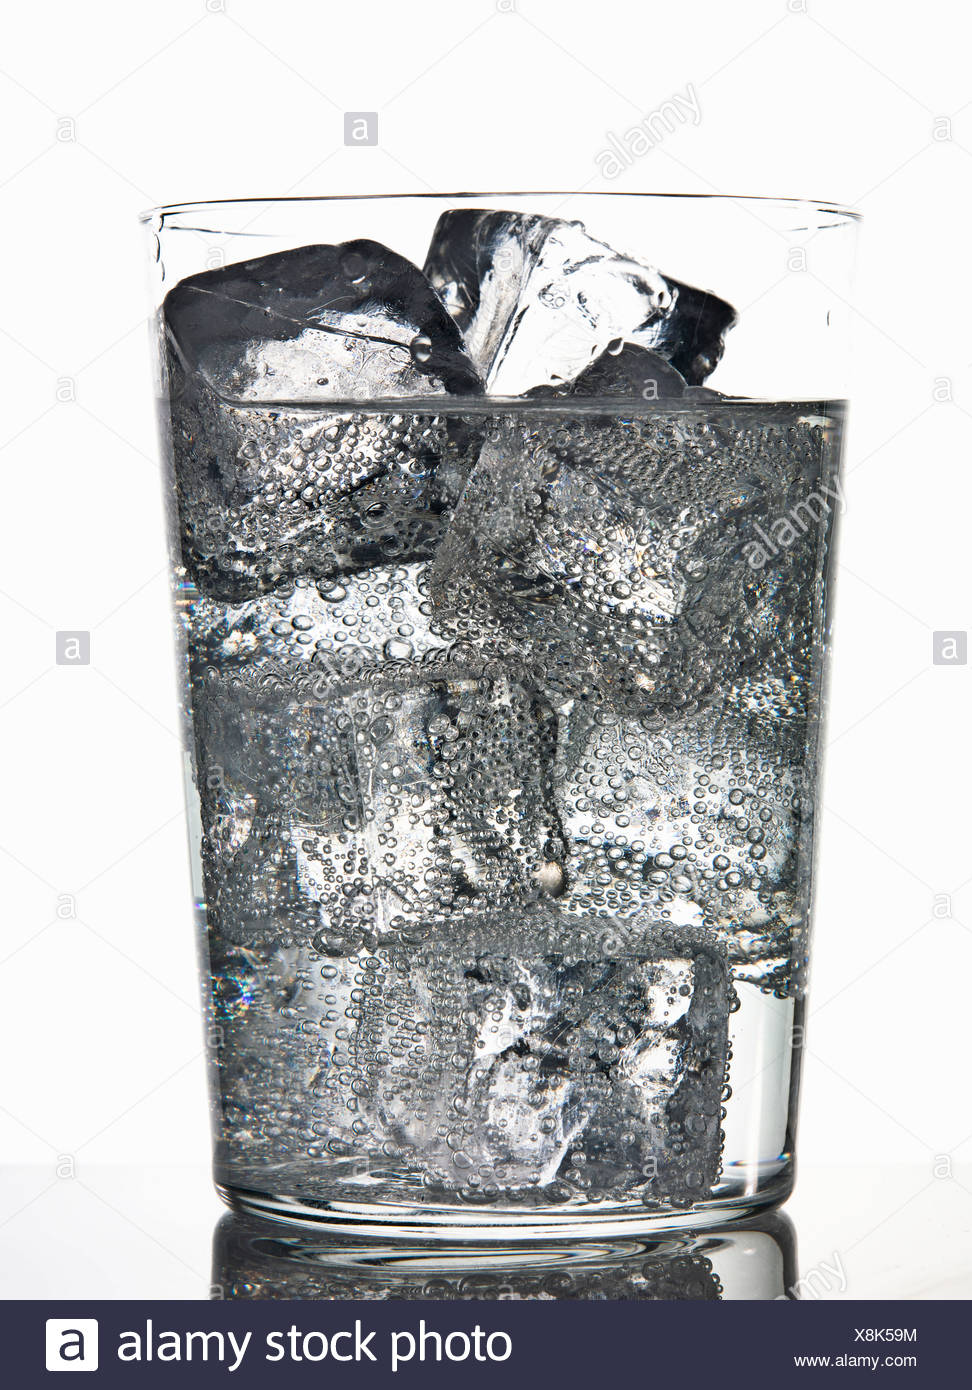 Glass of ice cubes in fizzy drink - Stock Image